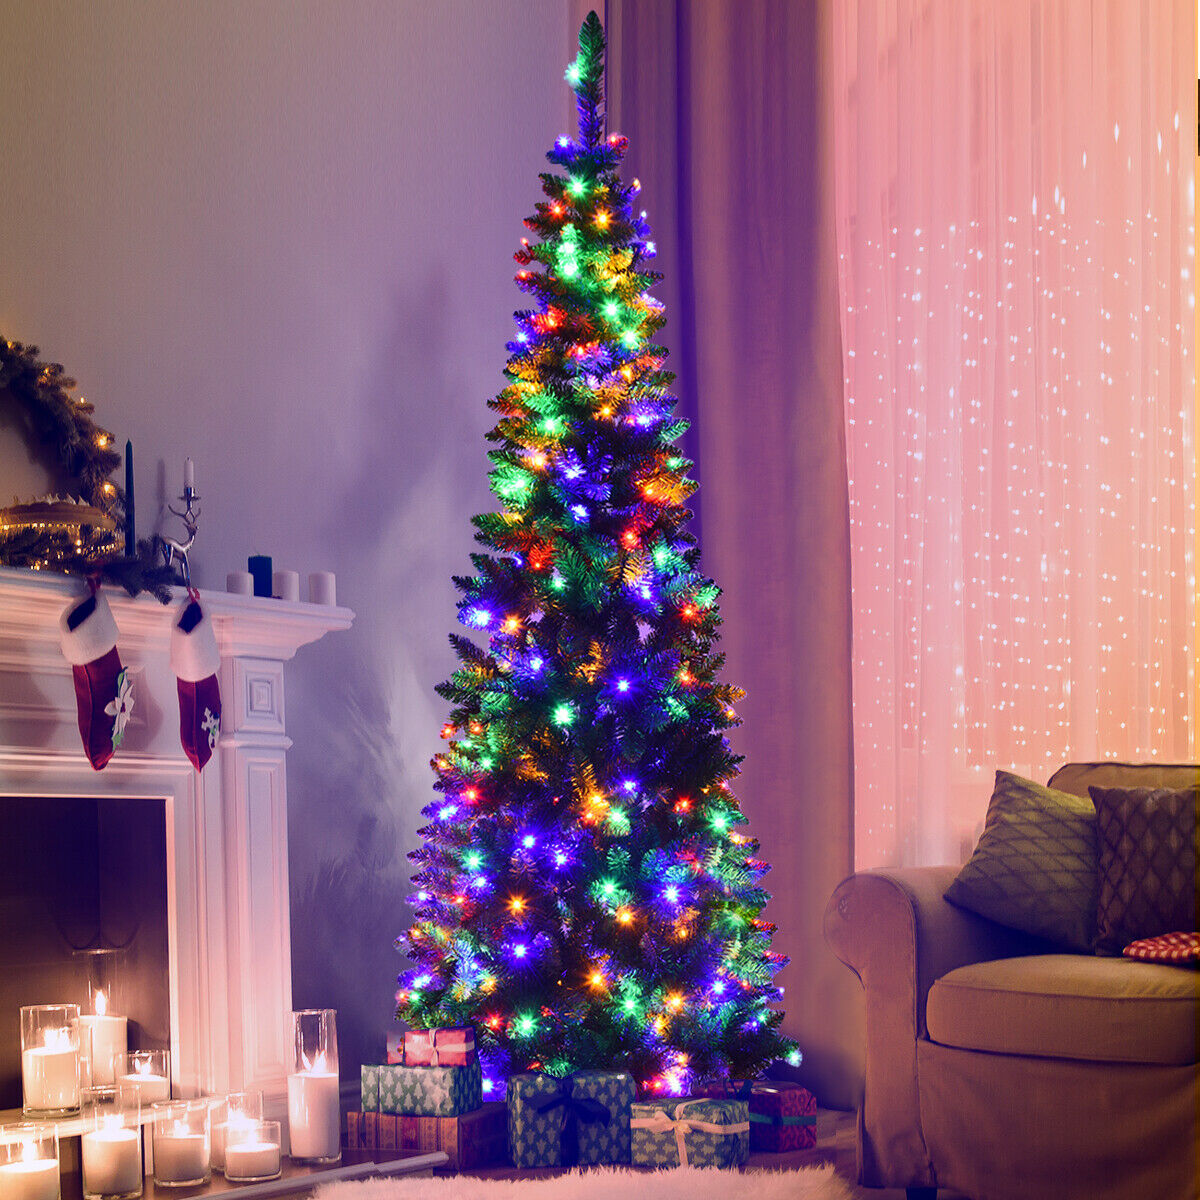 6 5ft Pre Lit Hinged Artificial Pencil Christmas Tree with 250 Multicolor